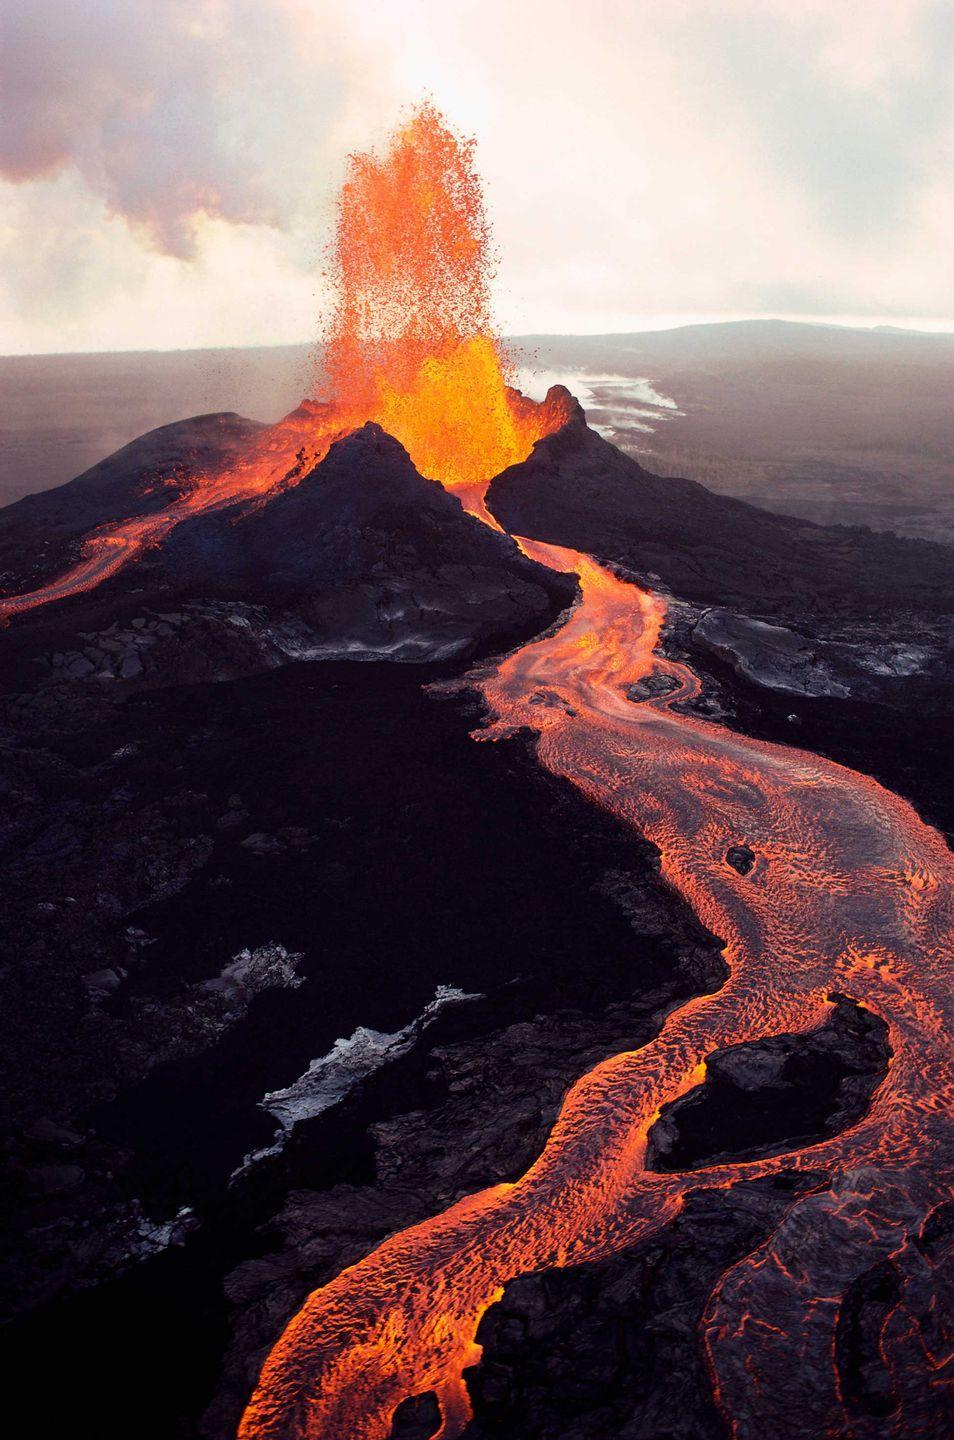 """<p>It's not just <em>anywhere</em> visitors can get up close to an active volcano like Kilauea Volcano, situated in <a href=""""https://www.nps.gov/havo/index.htm"""" rel=""""nofollow noopener"""" target=""""_blank"""" data-ylk=""""slk:Hawaii Volcanoes National Park"""" class=""""link rapid-noclick-resp"""">Hawaii Volcanoes National Park</a>. A dream for hikers across this 500 square miles of terrain, you'll see anything from lush <a href=""""https://www.bestproducts.com/fun-things-to-do/g25381127/beautiful-costa-rica-resorts/"""" rel=""""nofollow noopener"""" target=""""_blank"""" data-ylk=""""slk:tropical rainforests"""" class=""""link rapid-noclick-resp"""">tropical rainforests</a> to desert and of course, active volcanoes. Before you visit, make sure to check if there are any closures due to volcanic activity.<br> </p>"""